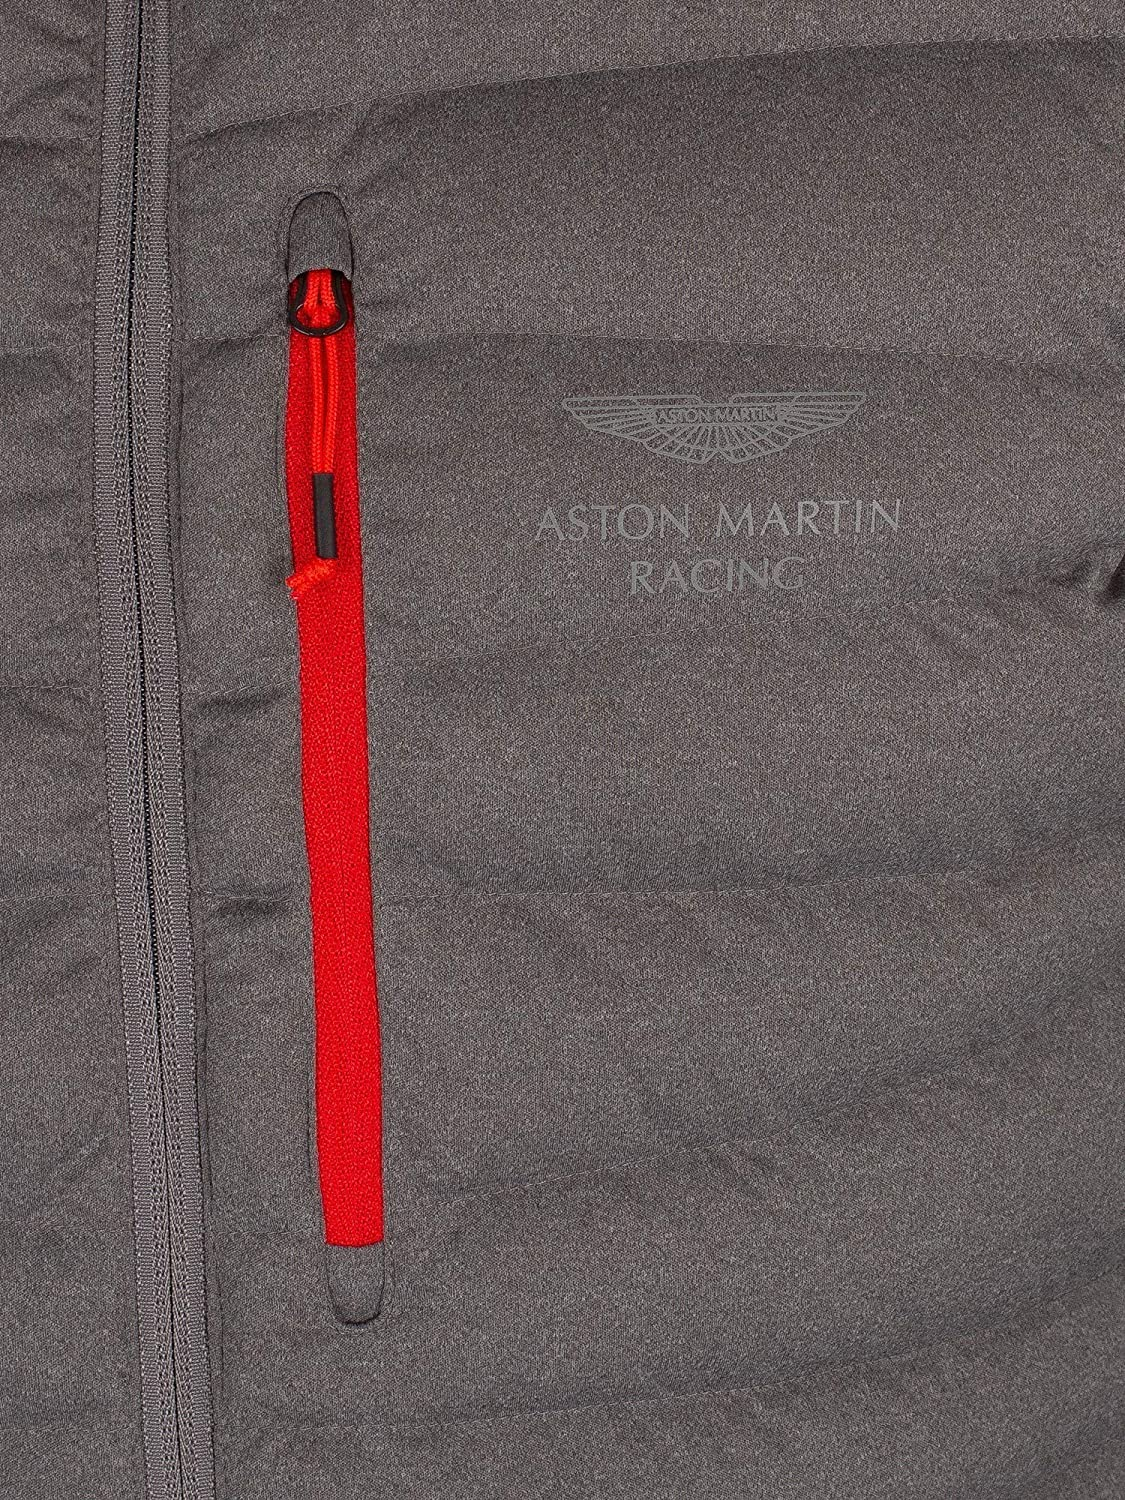 Hackett London Hombre Chaqueta Híbrida Aston Martin Racing, Gris, Small: Amazon.es: Ropa y accesorios